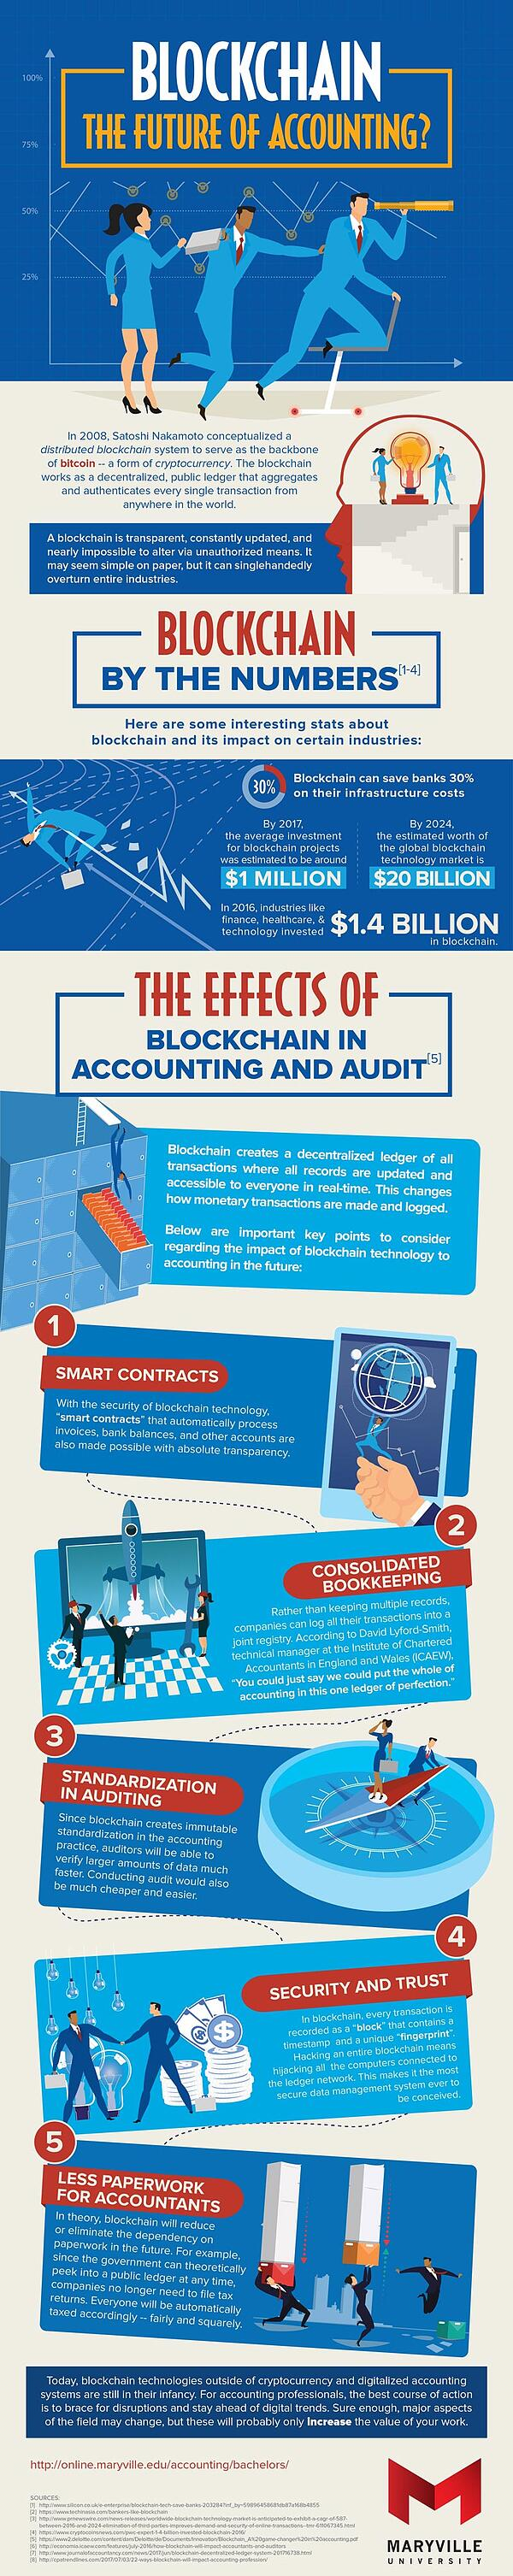 MVU-BSACC-Blockchain-The-Future-of-Accounting-1